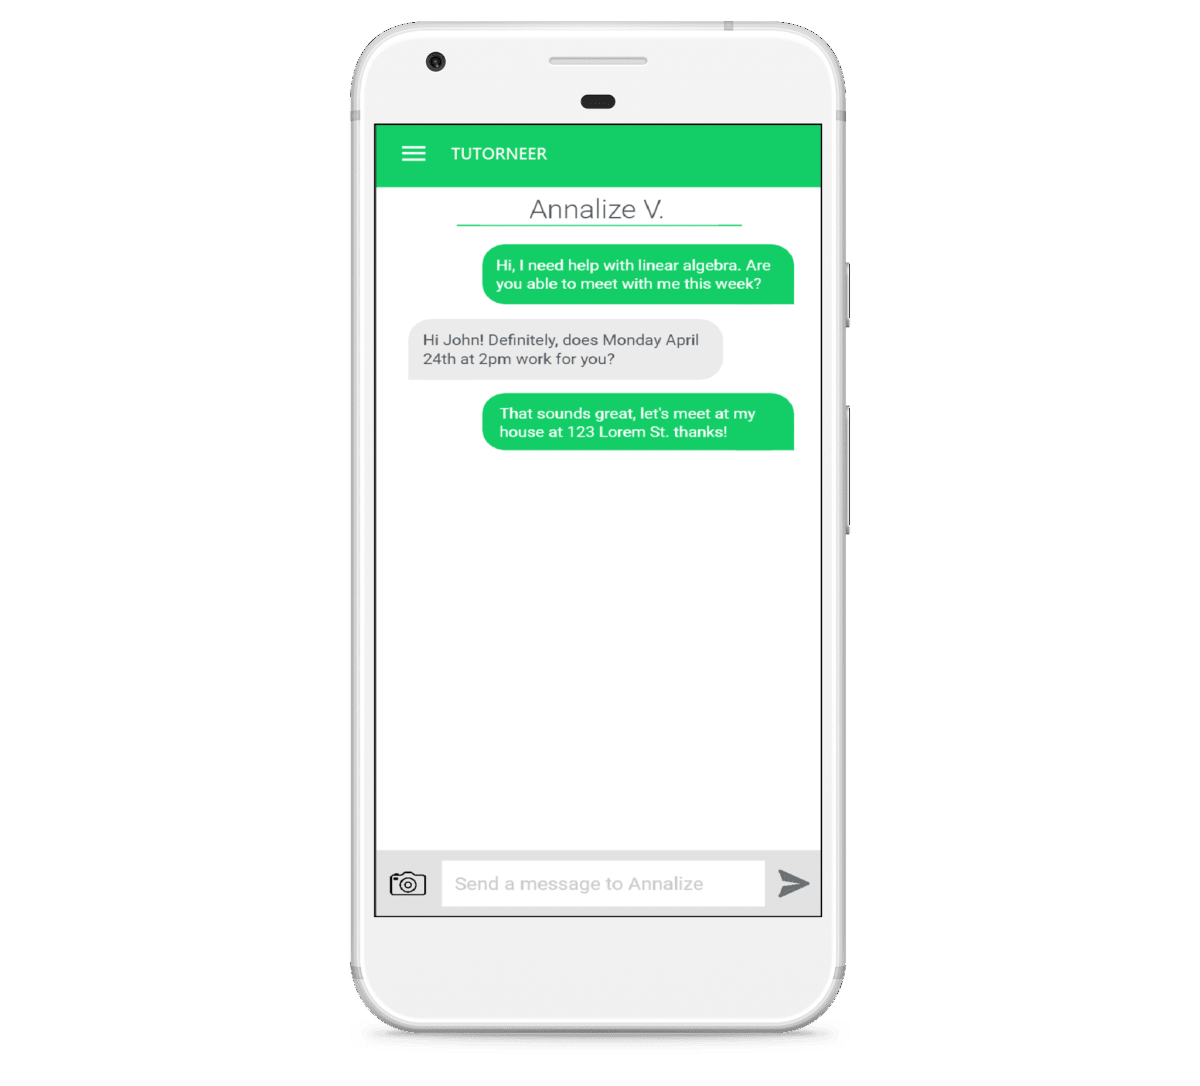 Send a message to on-demand tutors in Toronto with the Tutorneer app